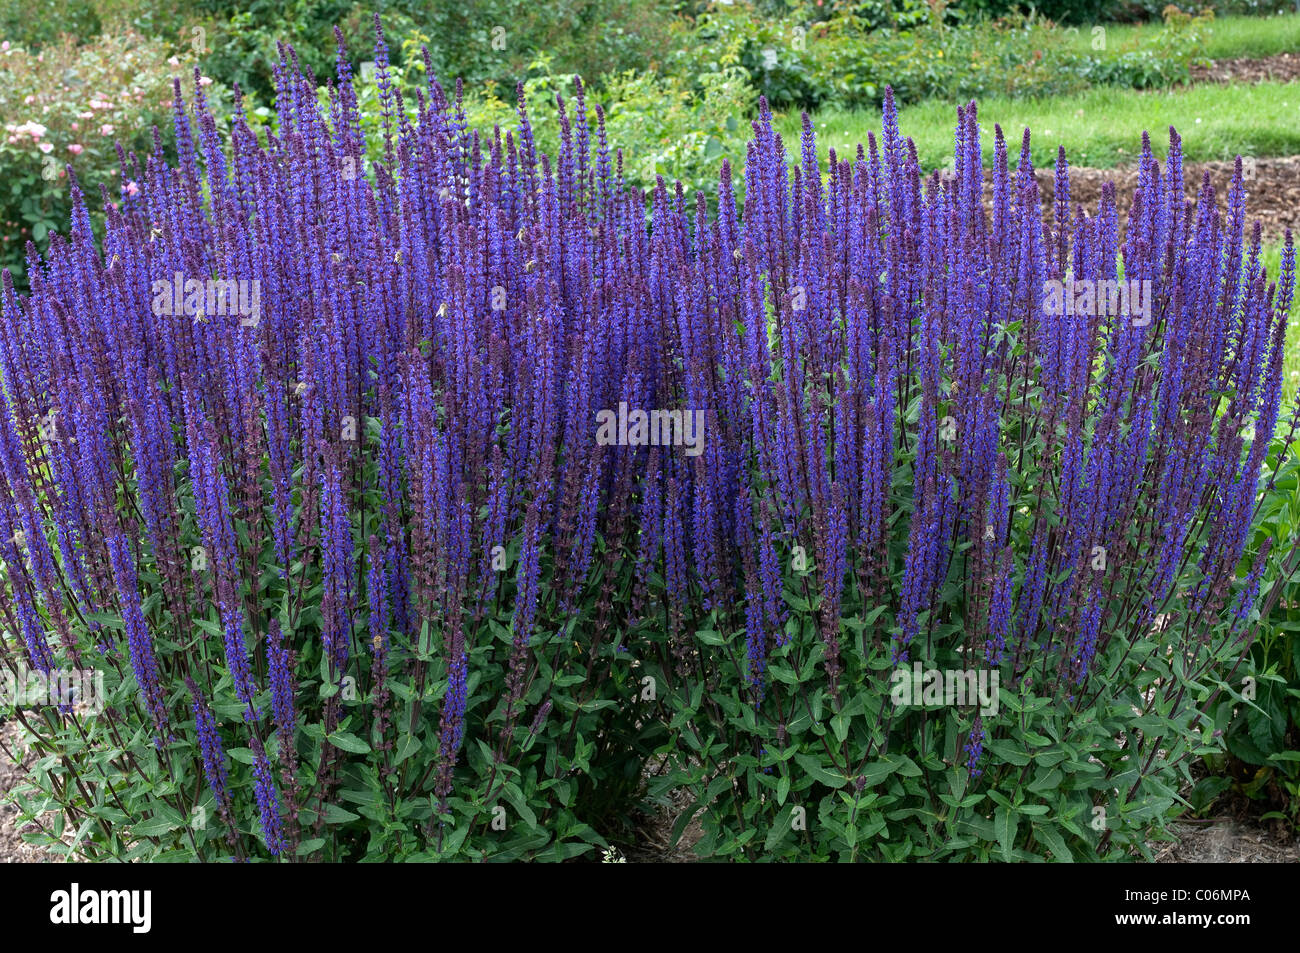 ornamental sage salvia nemorosa caradonna flowering stand stock photo 34568754 alamy. Black Bedroom Furniture Sets. Home Design Ideas